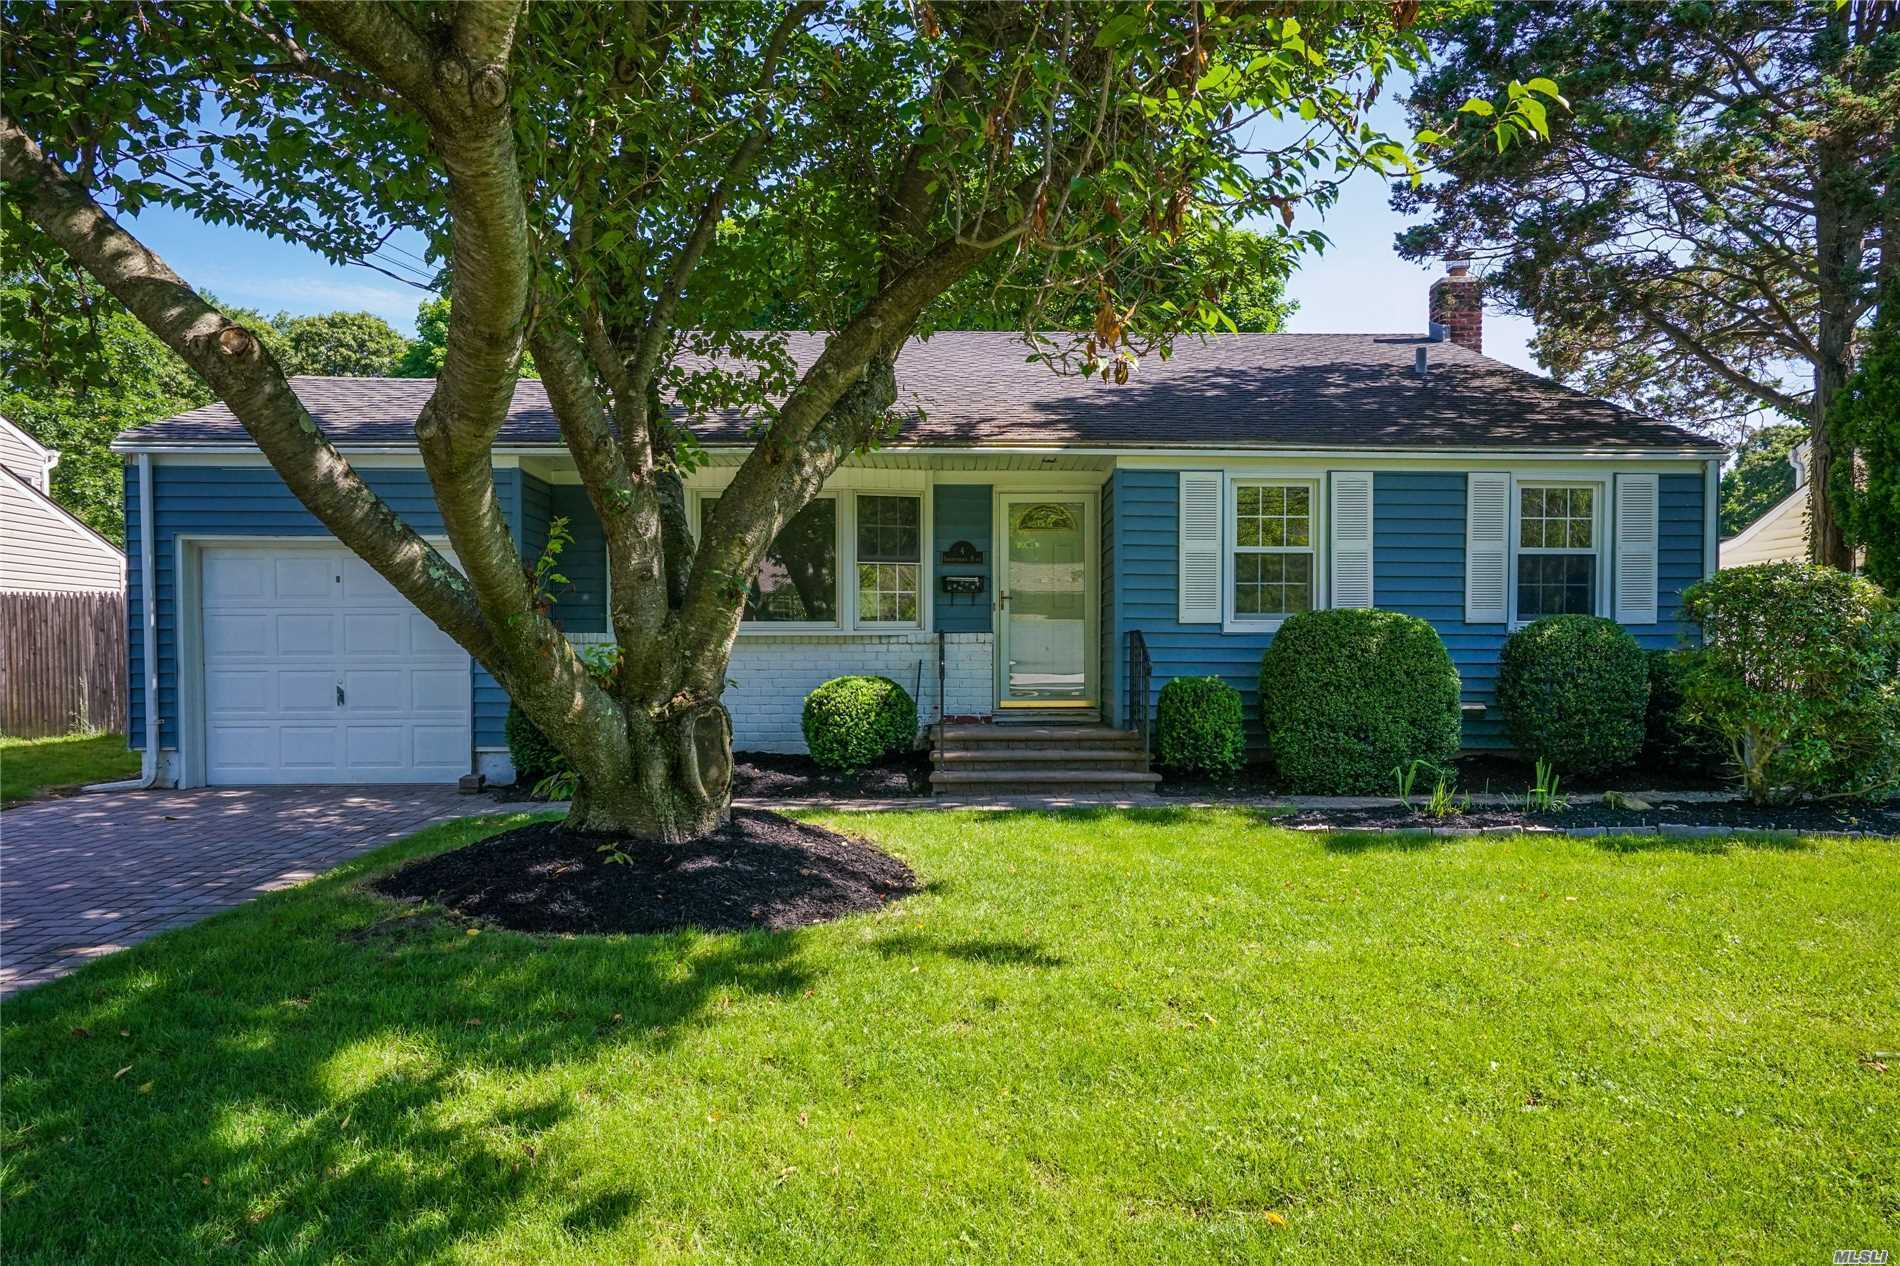 Entertainers Delight! Great 3-Bd, 1.5-Bth Split W/Country Club Backyard! Living Rm W/Cathedral Ceiling & Mini Split A/C. Eik W/Upd Appl. Family Rm W/Wood Burning Fpl. Amazing Fenced-In Backyard With Paver Patio, Built-In Bbq, Gunite Pool & Landscaping. Updates Include Windows, Doors, W/D, Boiler, Siding, Gutters, Roof, Paver Patio & More! Don't Let This One Get Away! Be The Proud Owners!